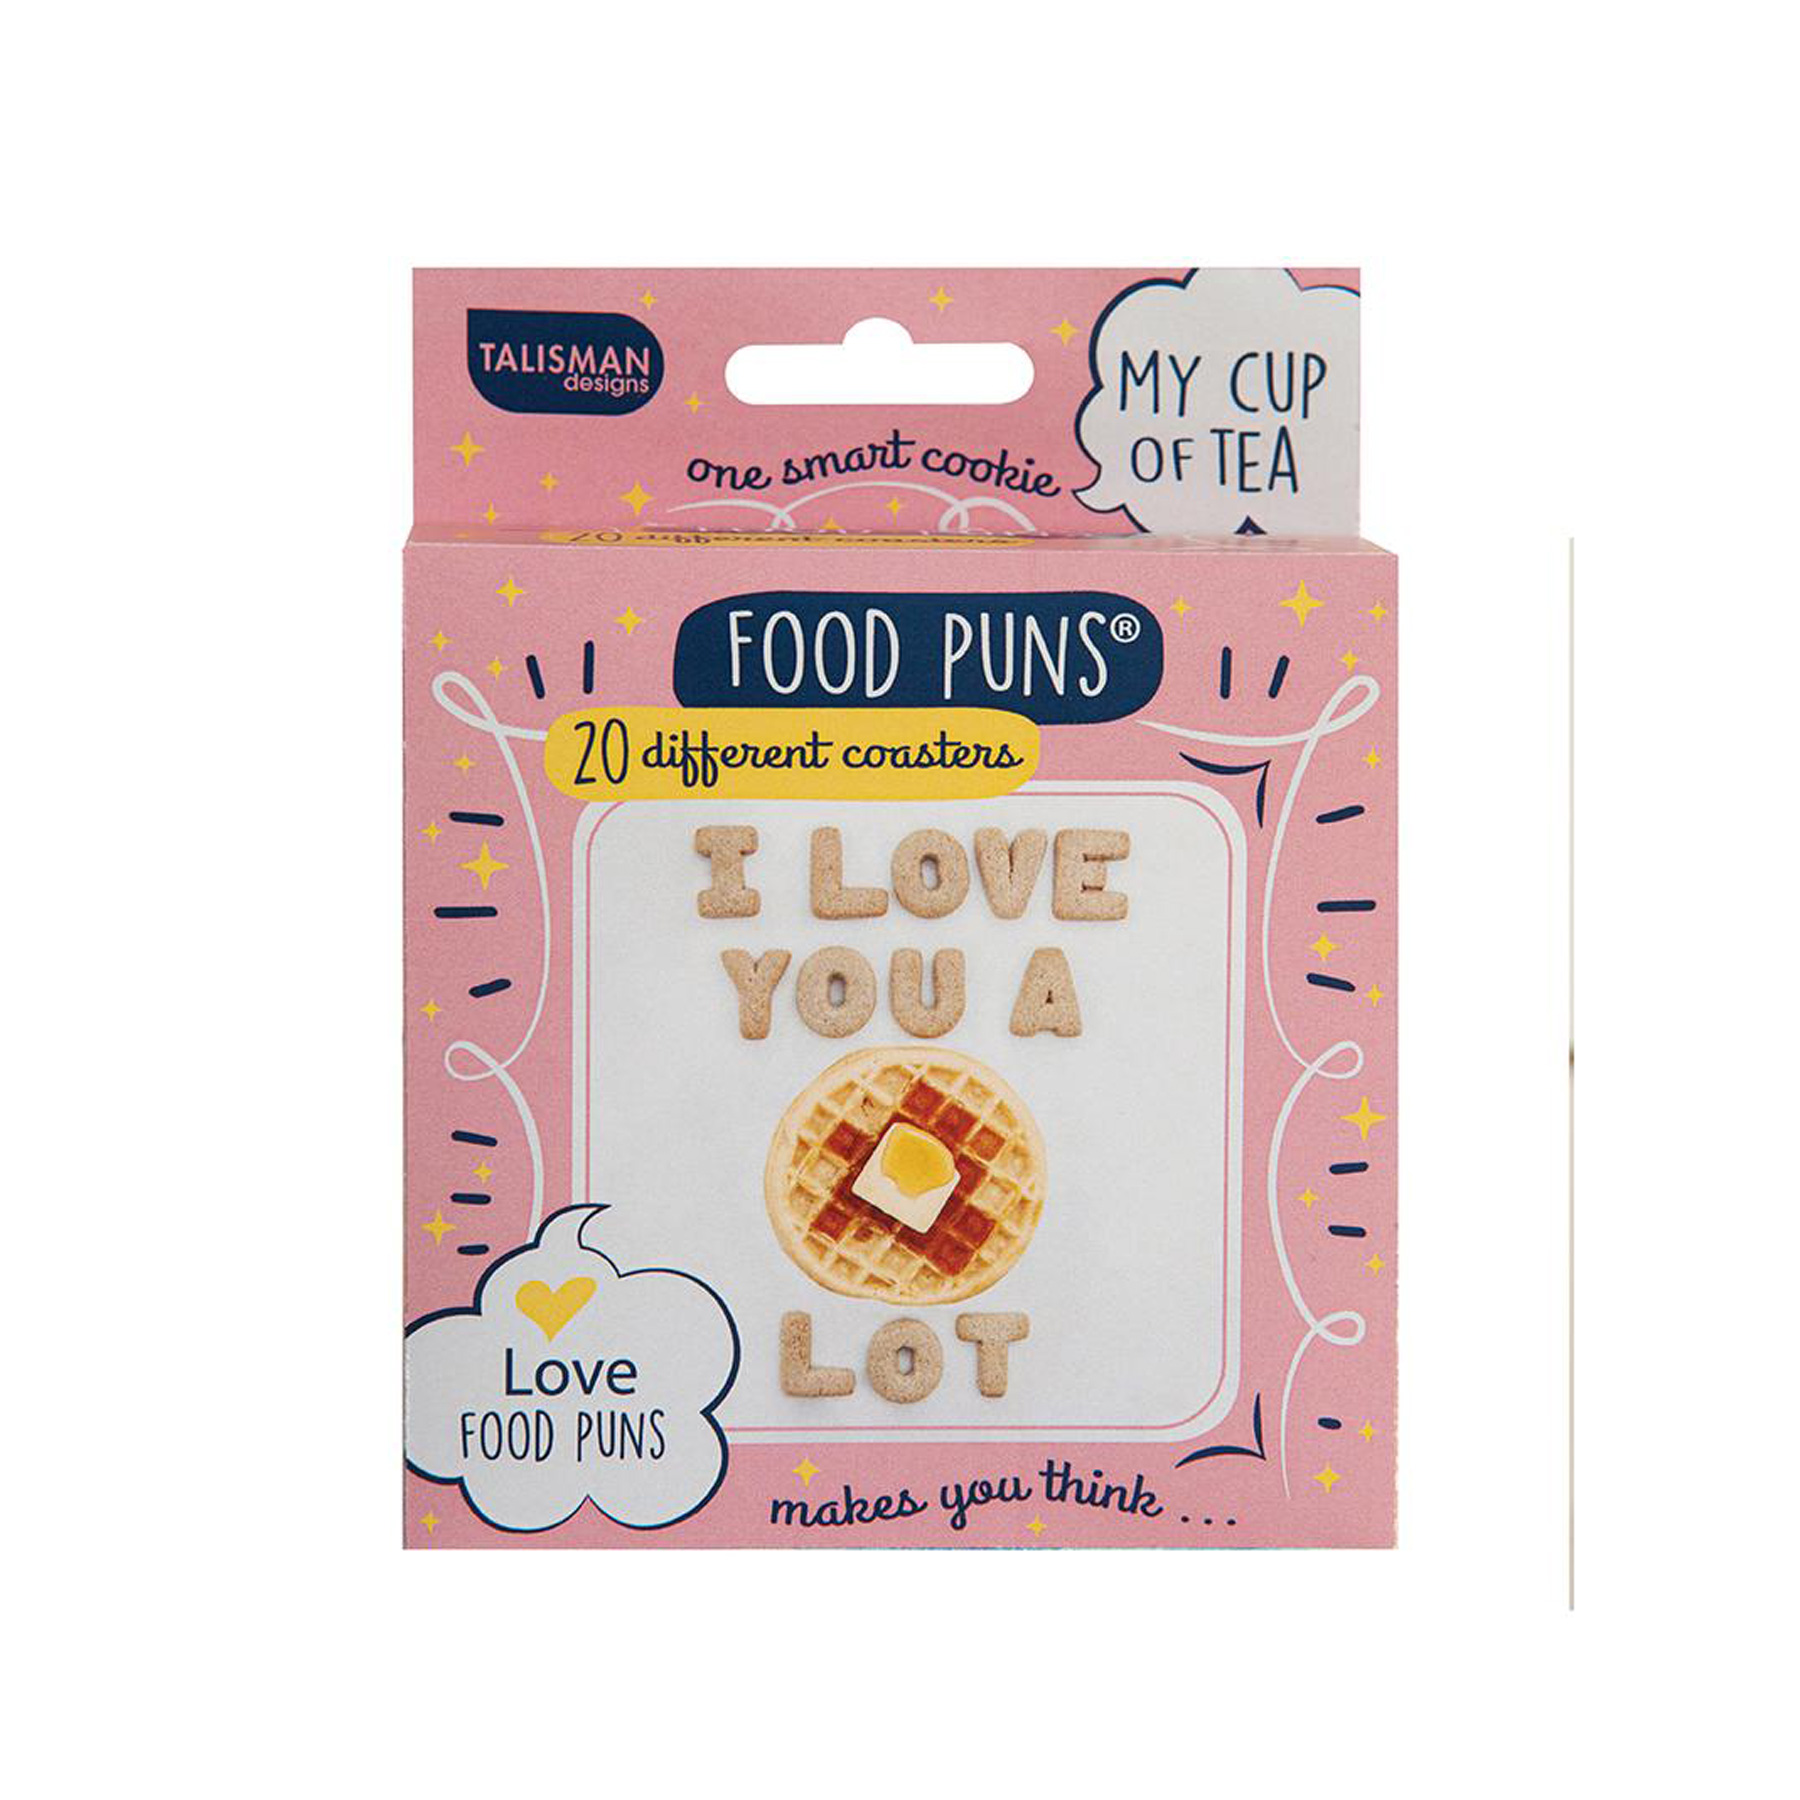 Funny Valentine's Day Gifts: Love-Themed Food Pun cardboard coasters